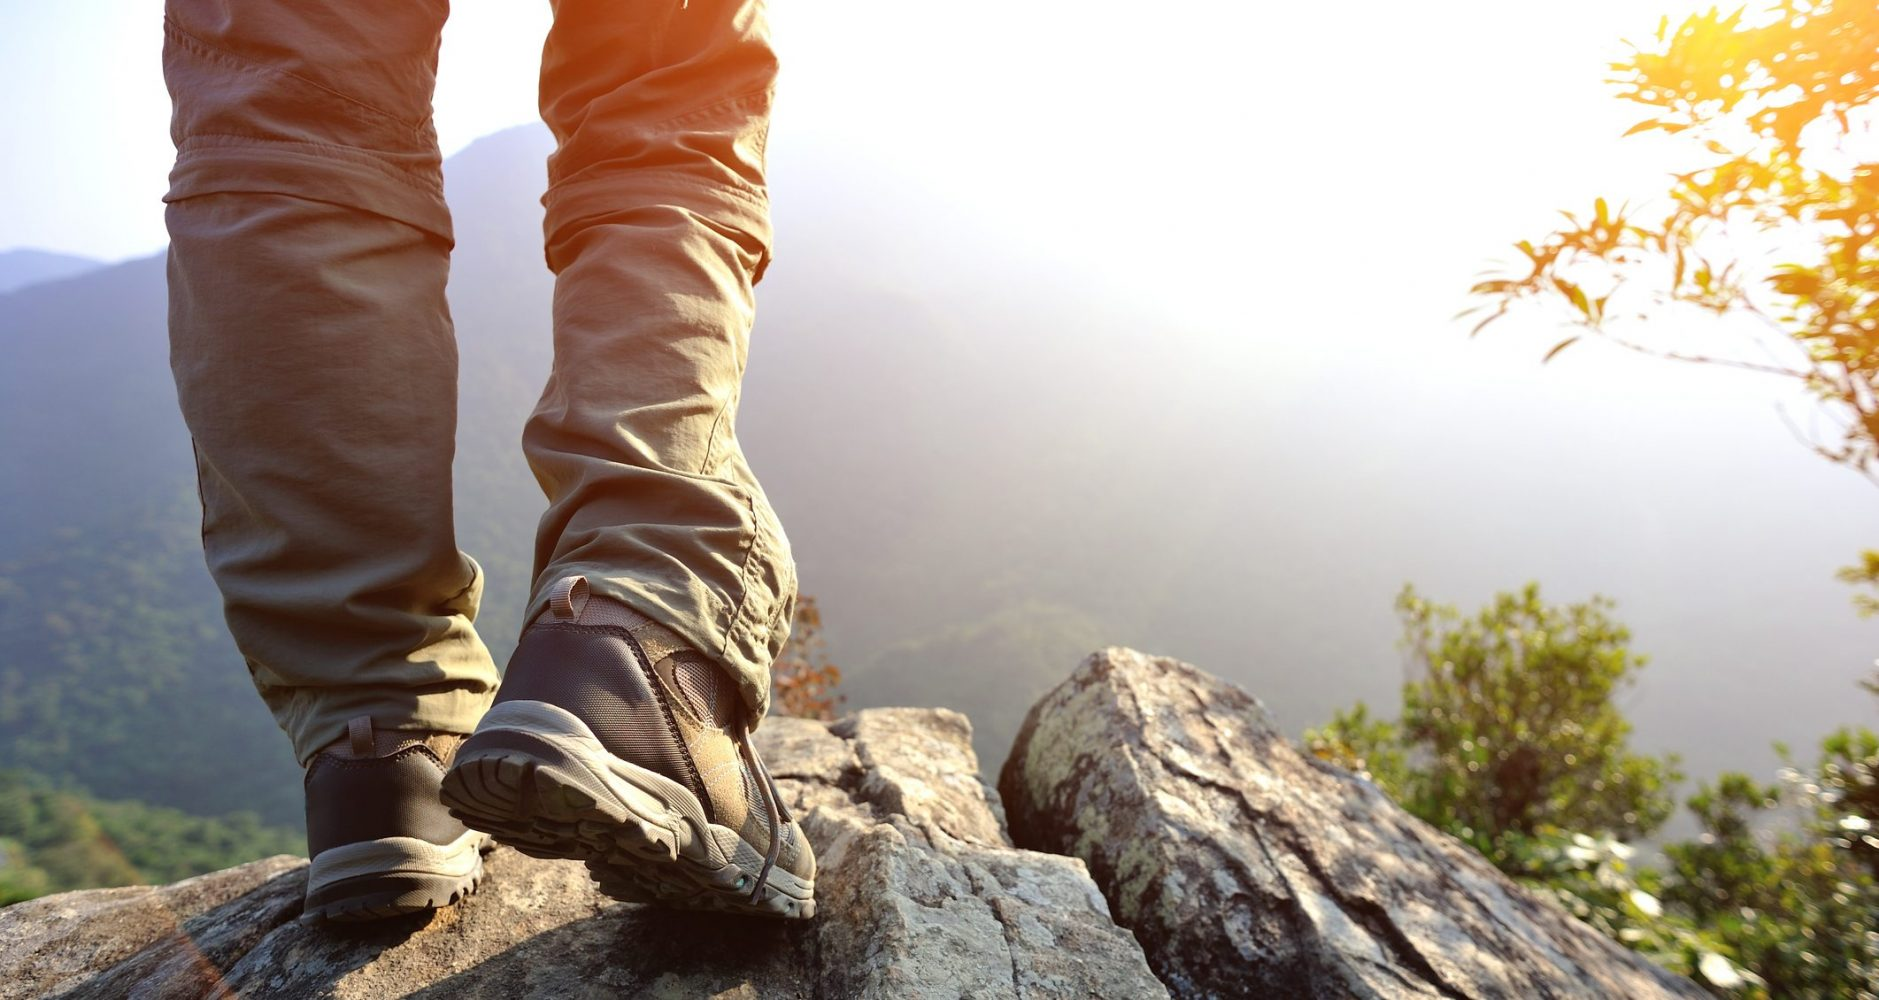 Best Hiking Boot Brands: What to Expect for Options & How to Choose